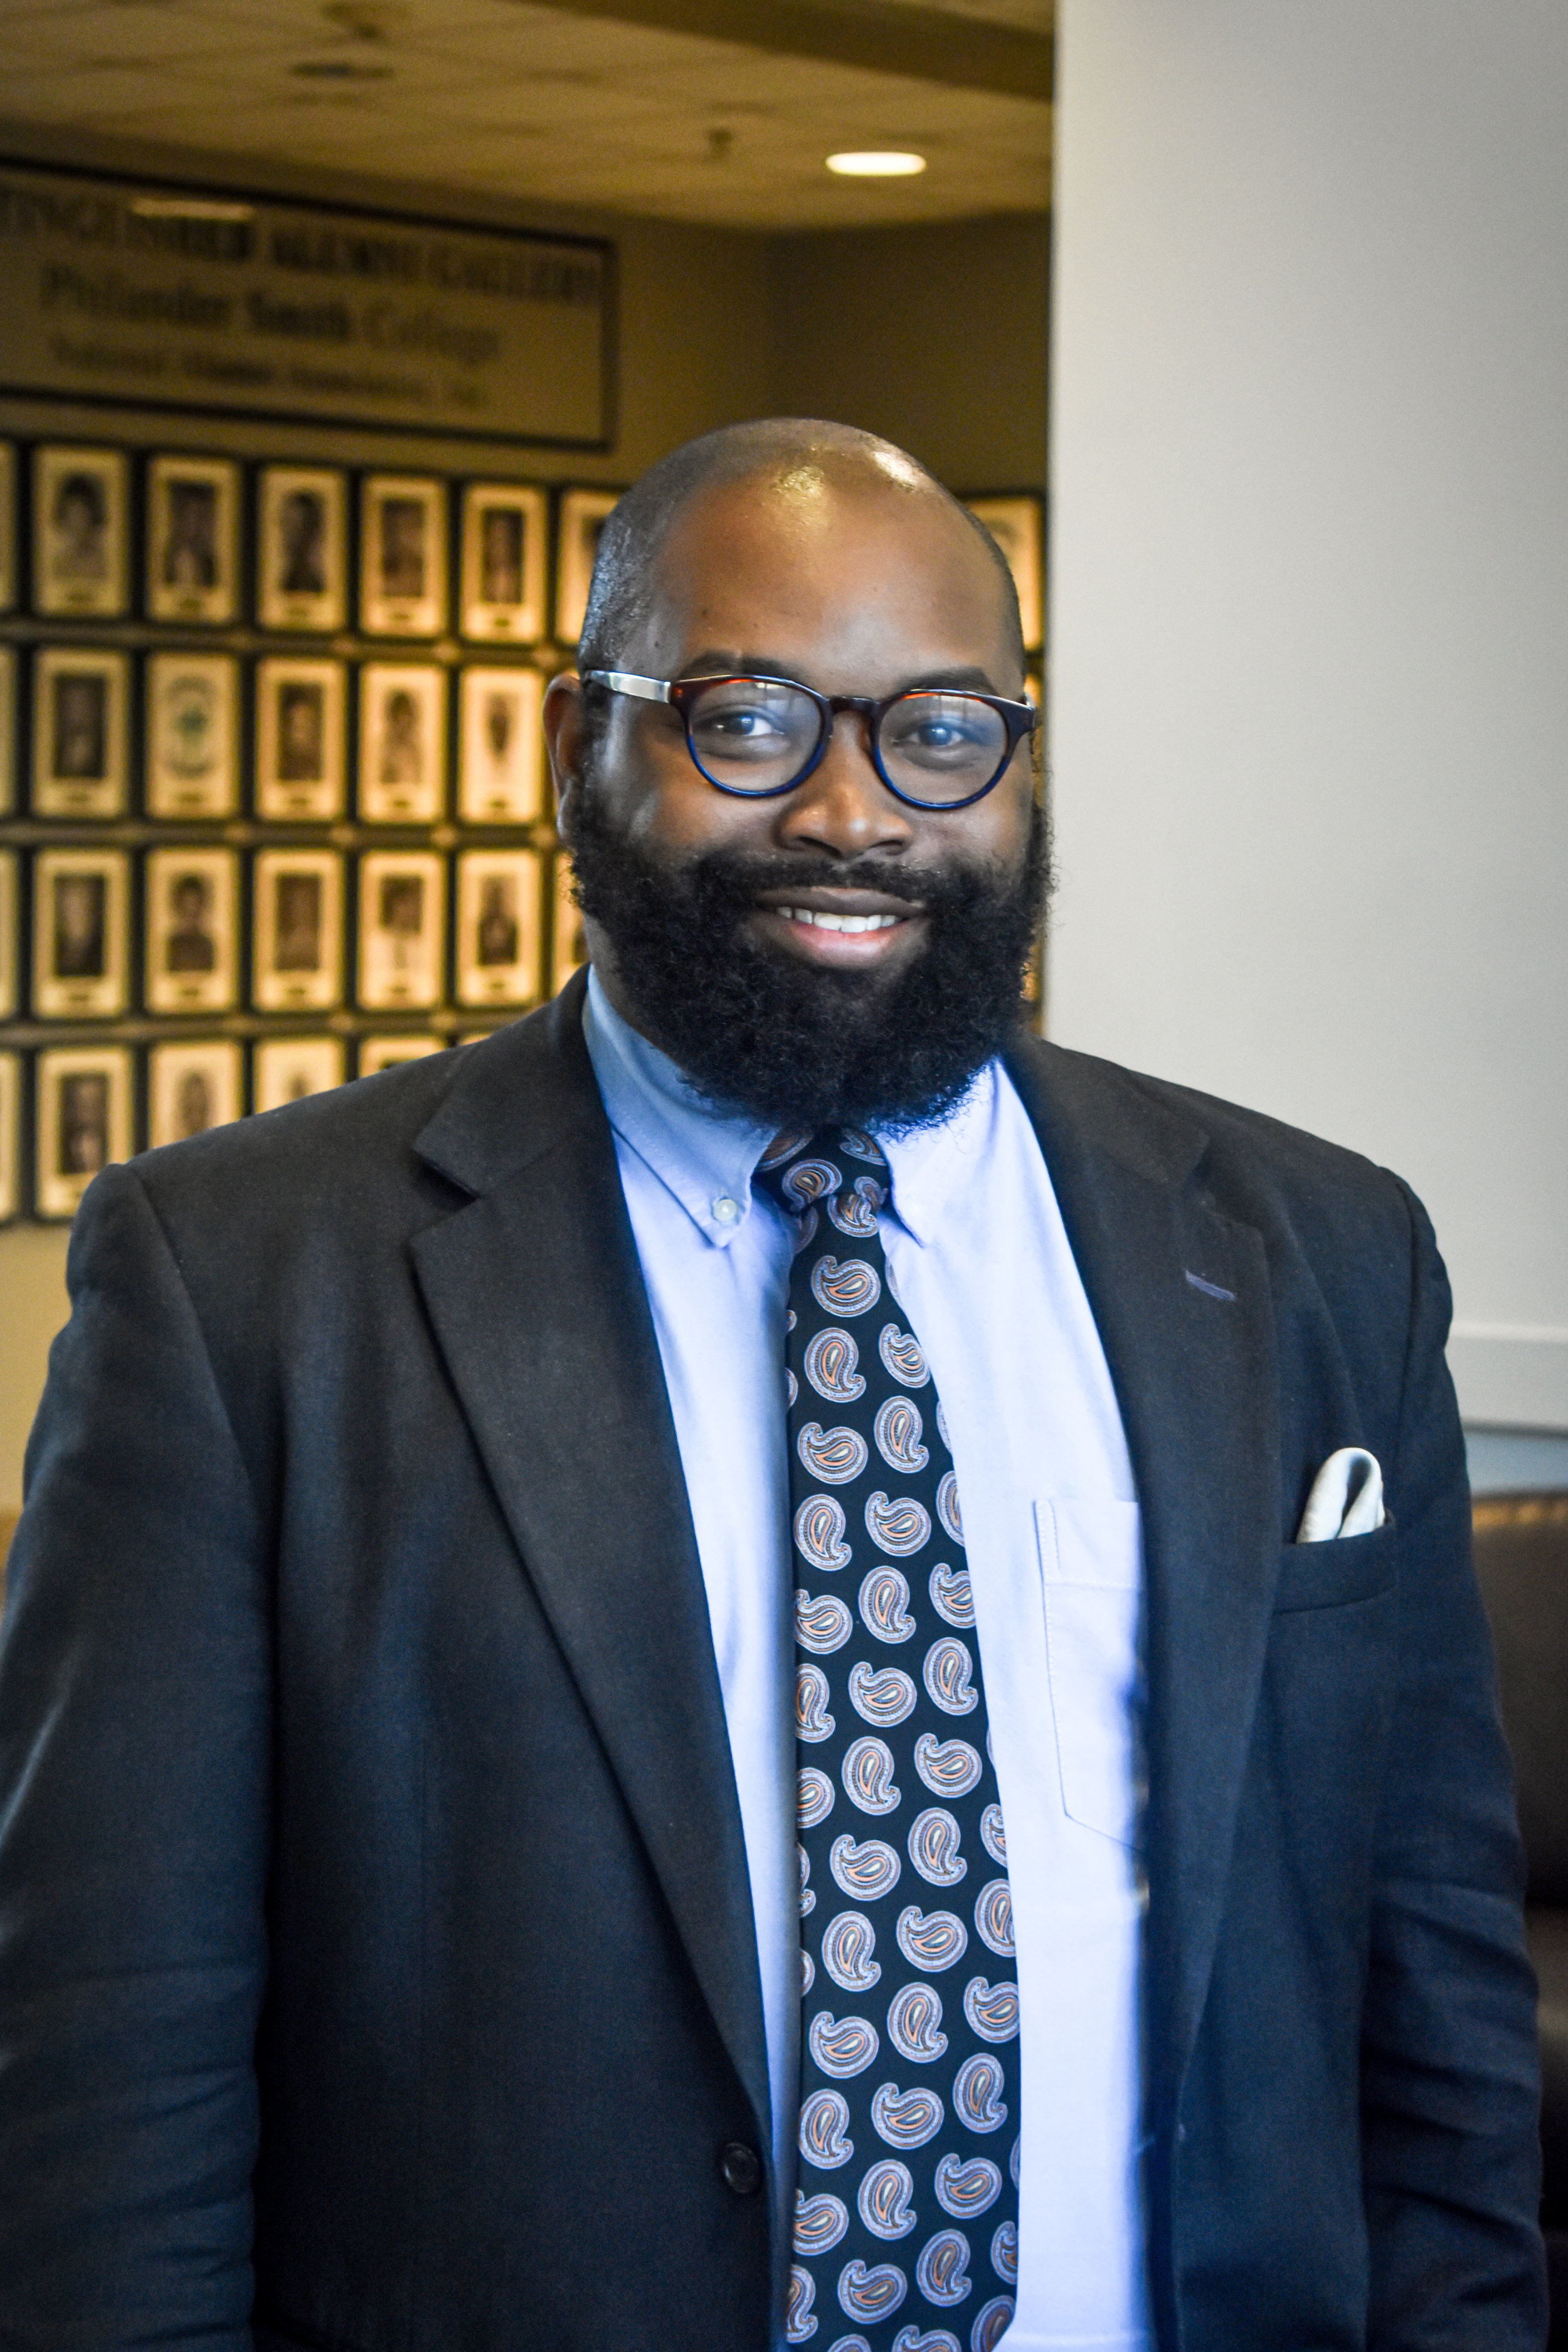 Mr. Kevin Cooper    Director of Development   Office of Institutional Advancement